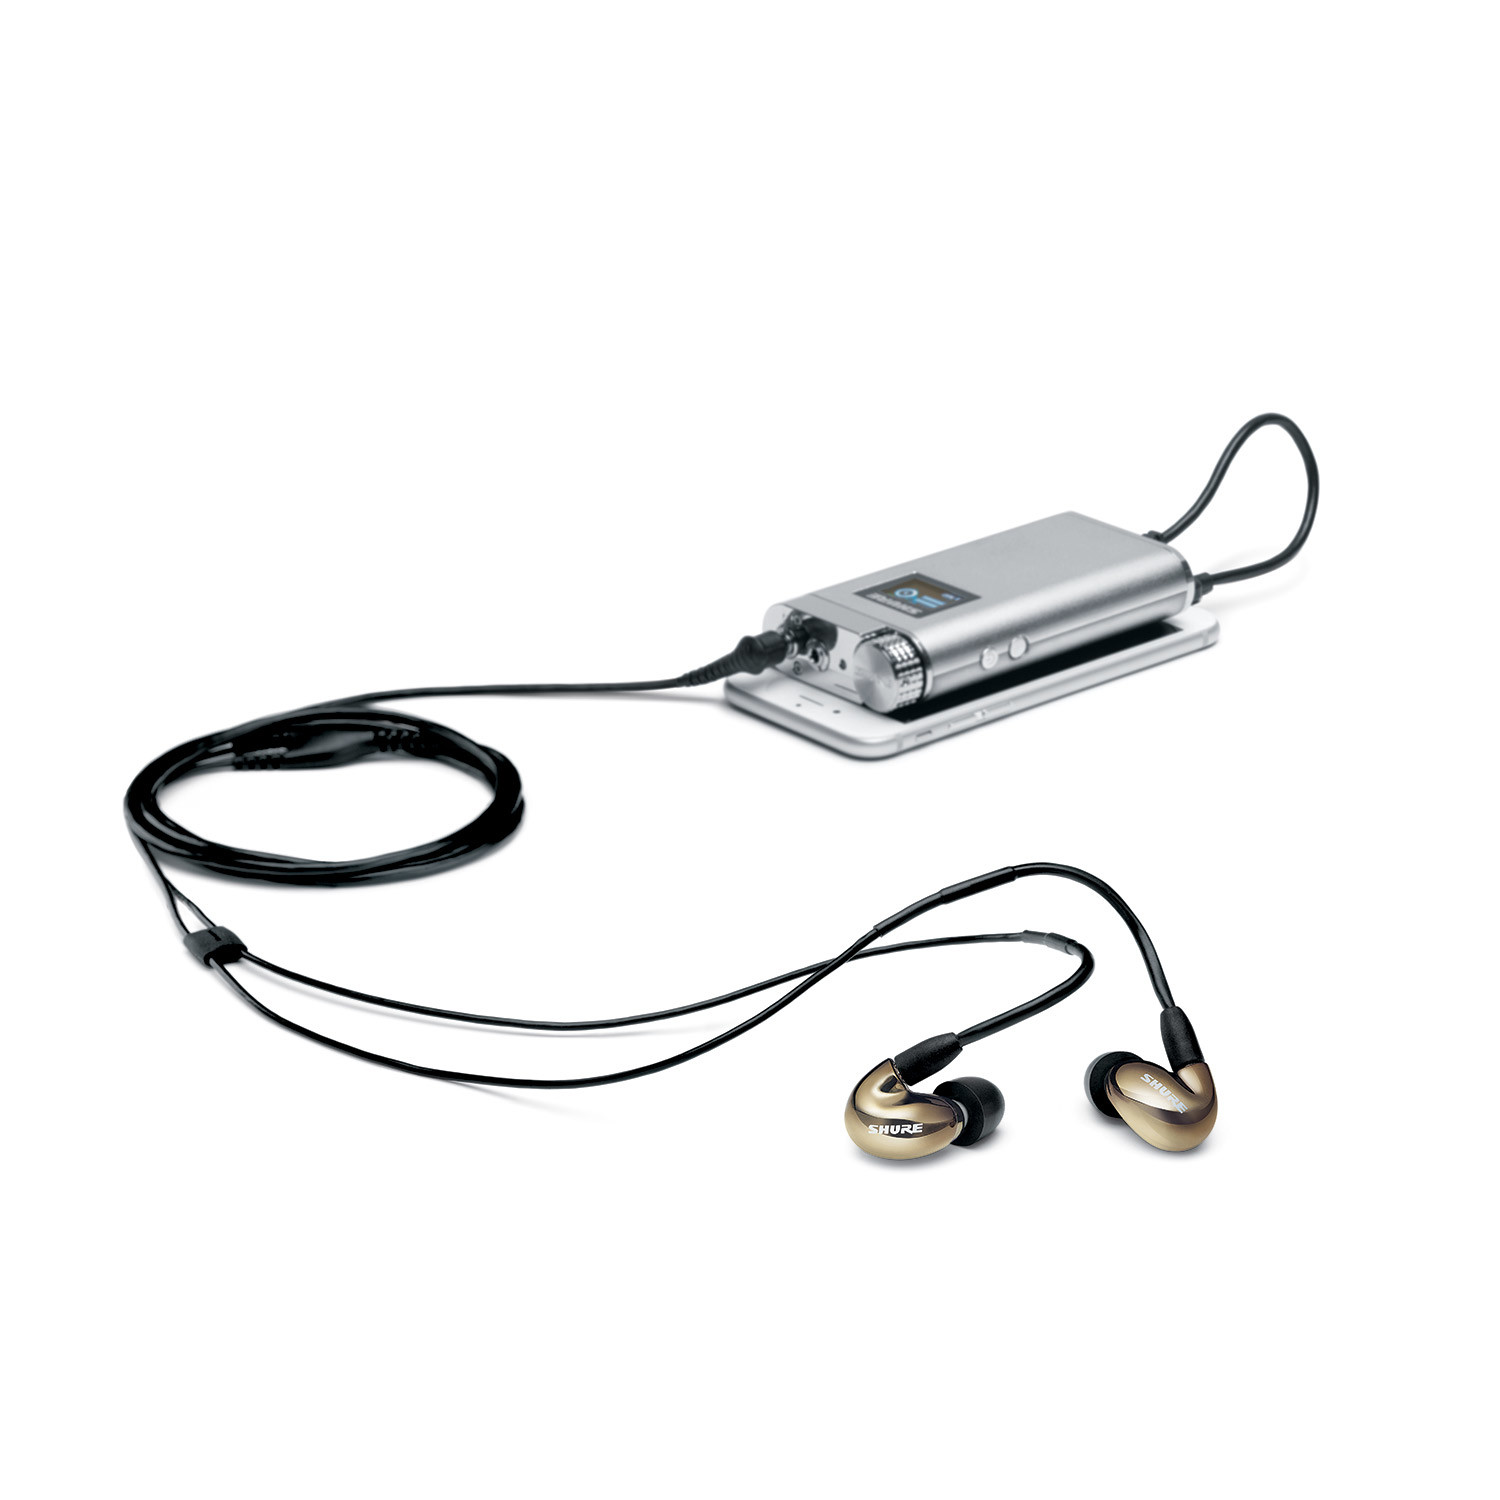 sha900 portable listening amplifier - shure